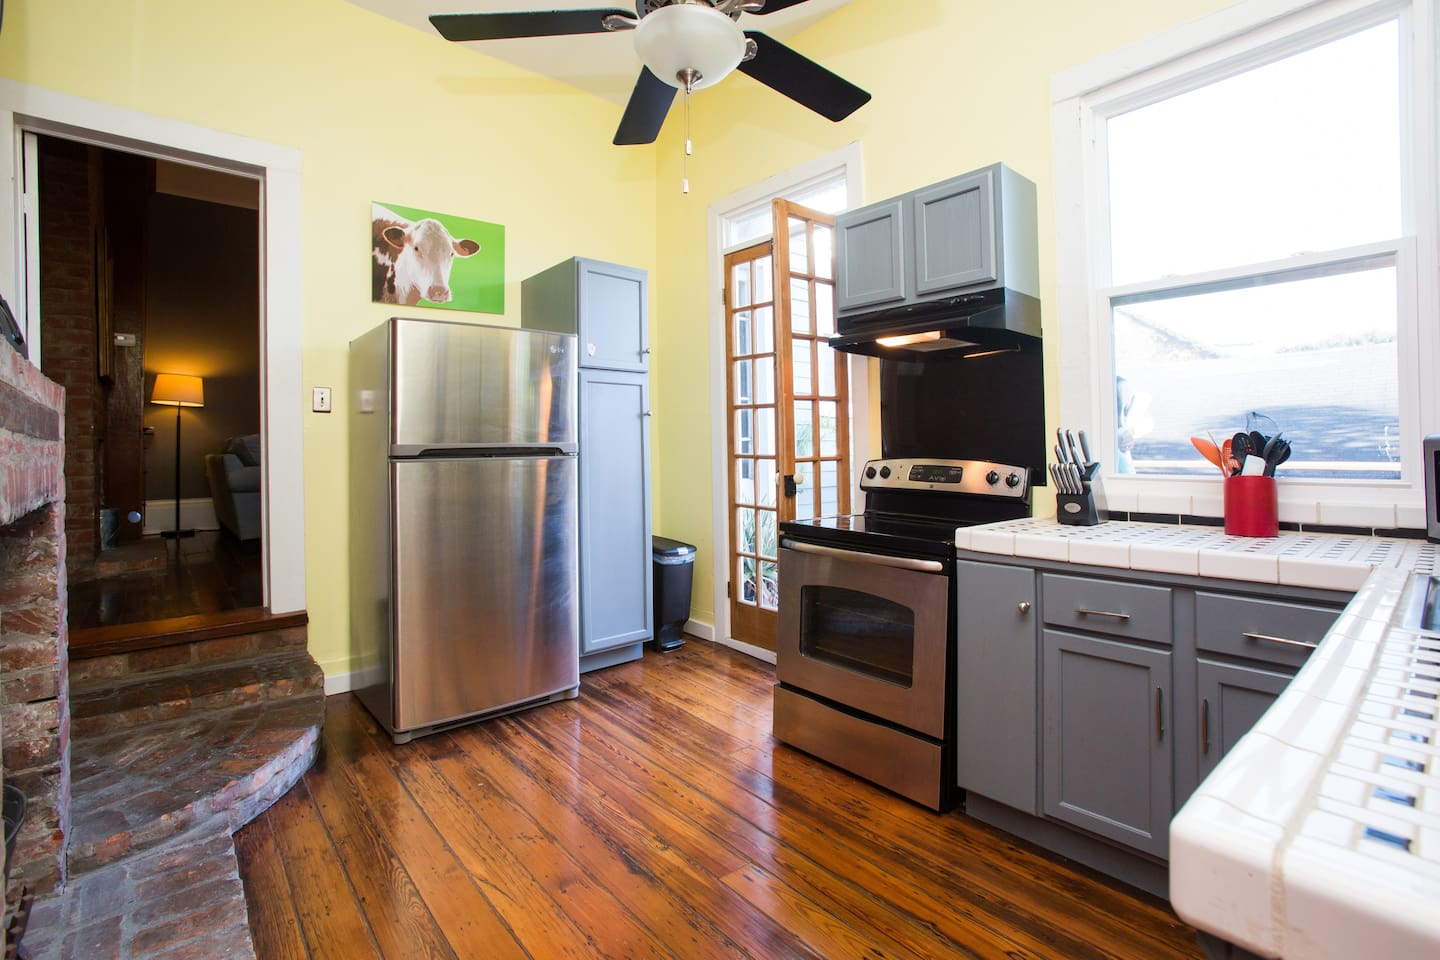 Kitchen with a full oven, refrigerator & dishwasher